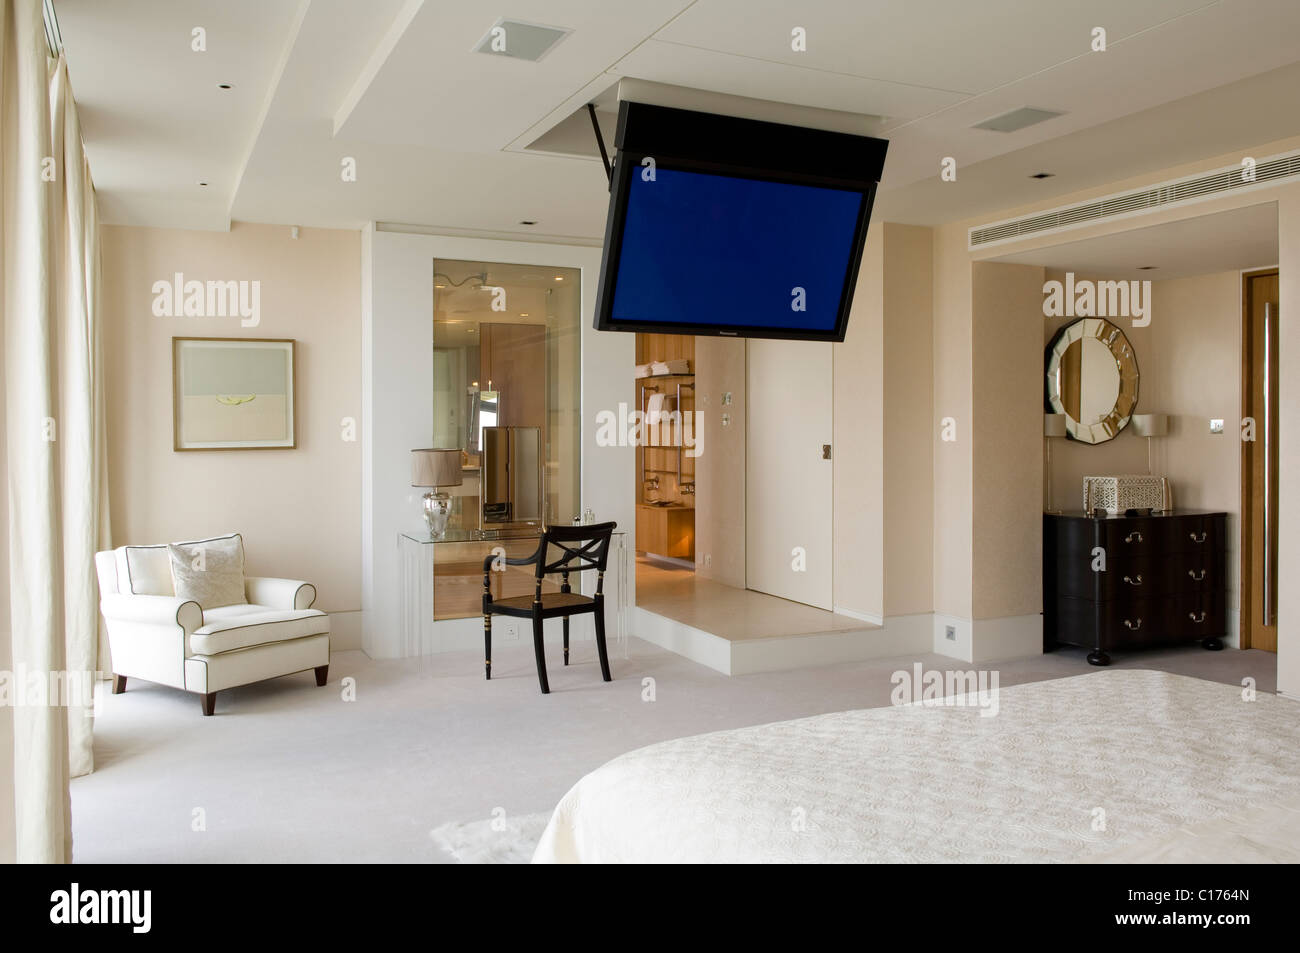 Charmant Flat Screen Plasma TV Mounted To The Ceiling In Modern Bedroom With Armchair